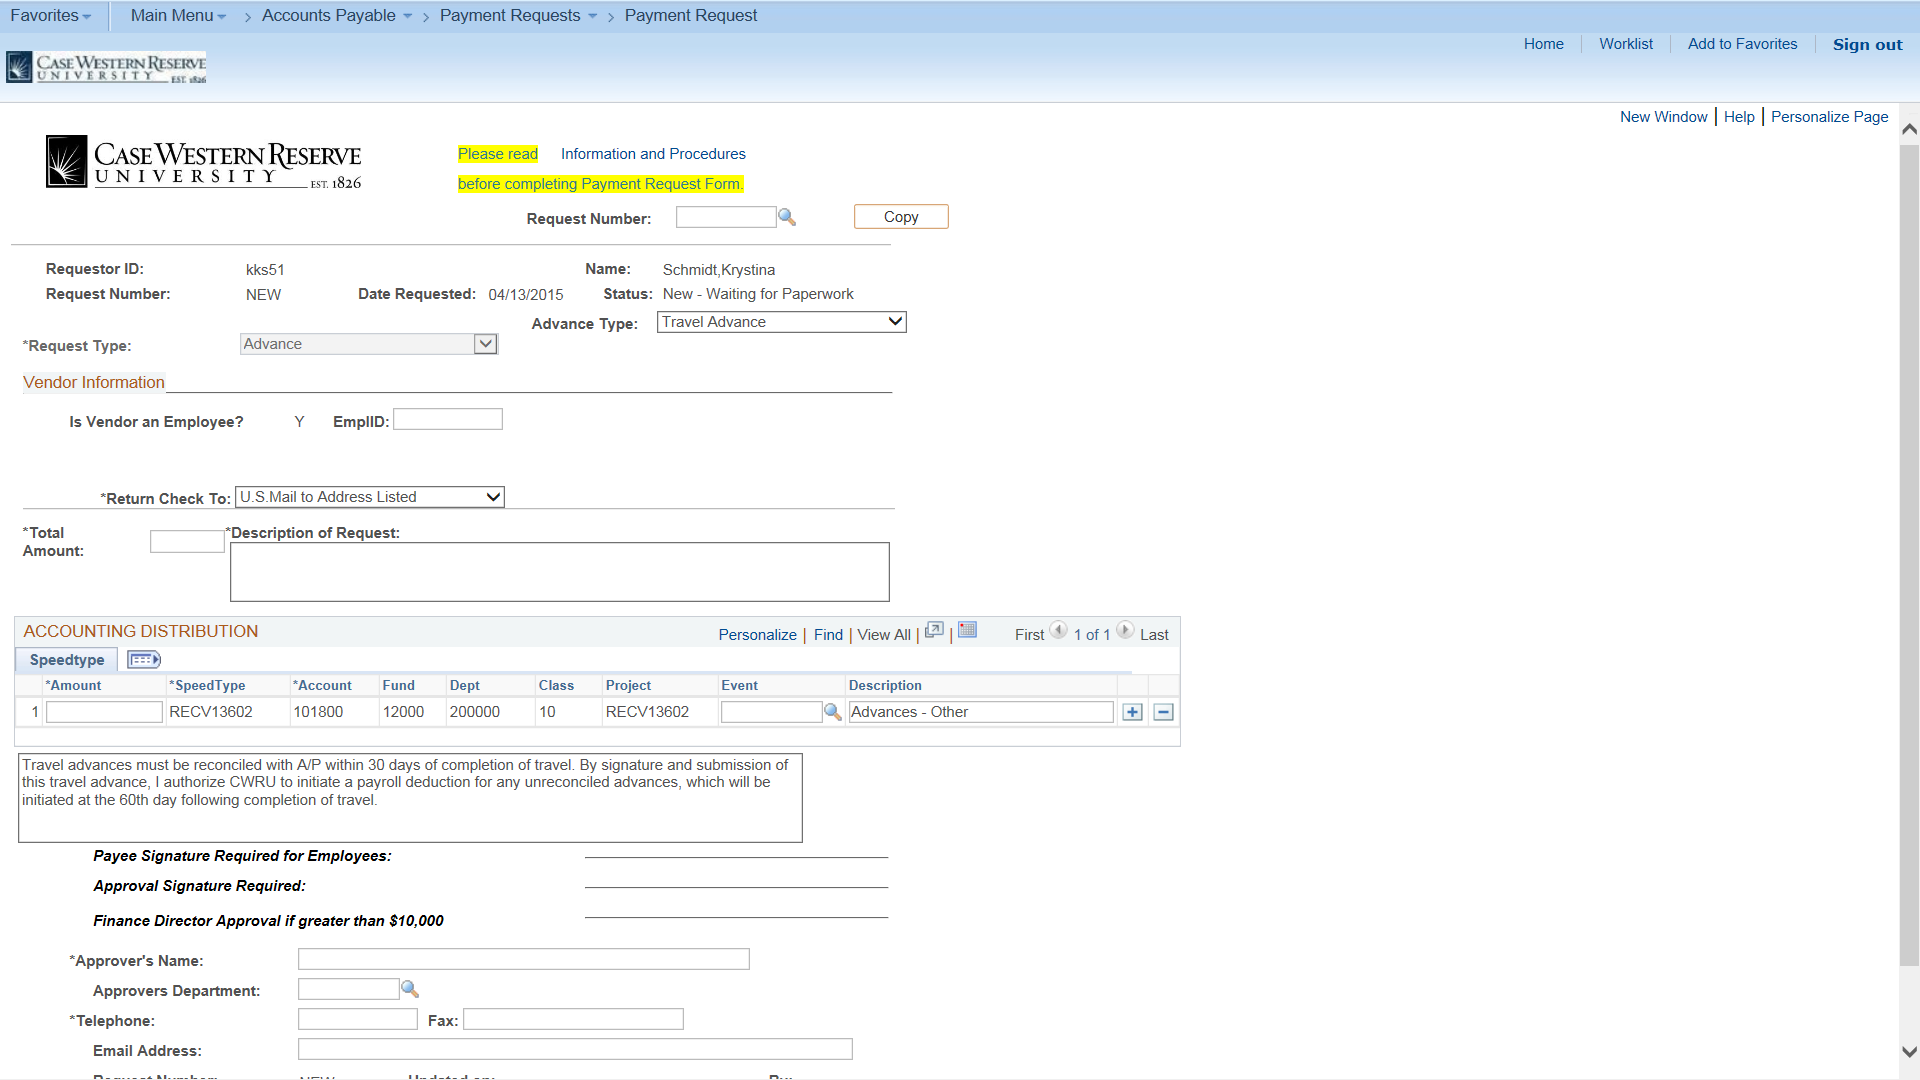 Peoplesoft submitting a payment request for cwru employees screenshot of the peoplesoft payment request page with the advacne type field set to travel altavistaventures Image collections